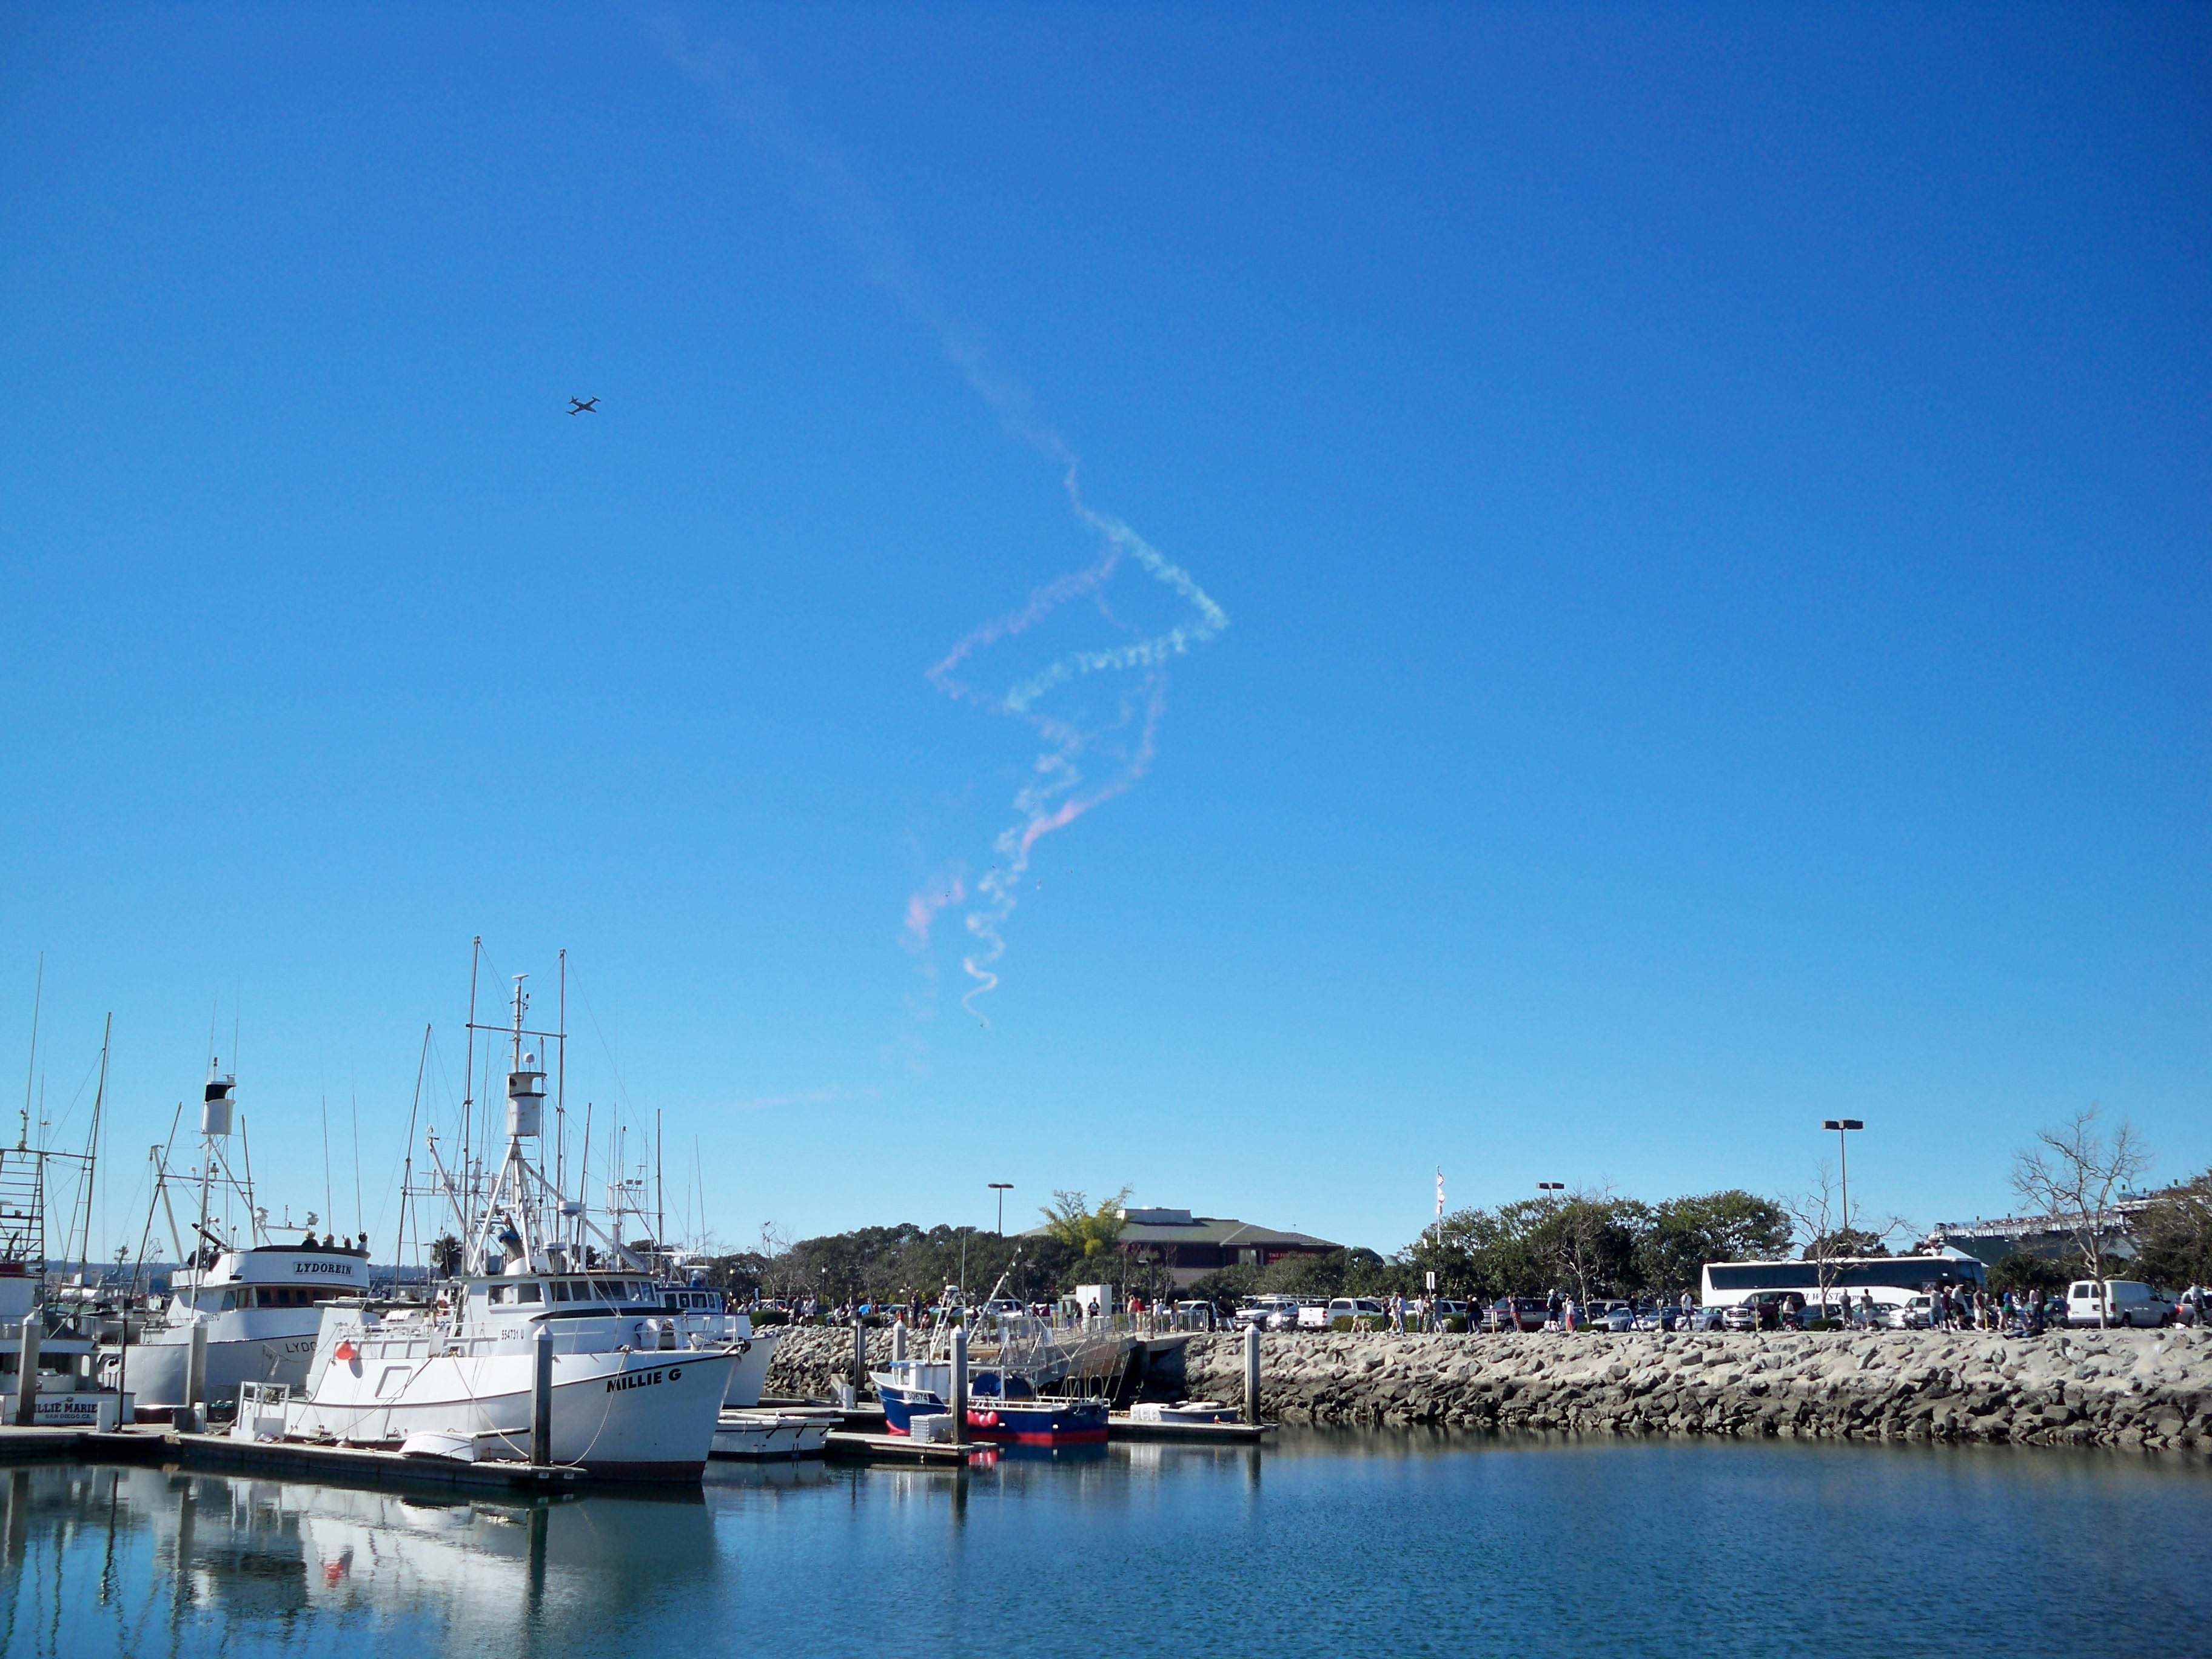 Skydivers letting out smoke trails as they glide past the Fish Market downtown.